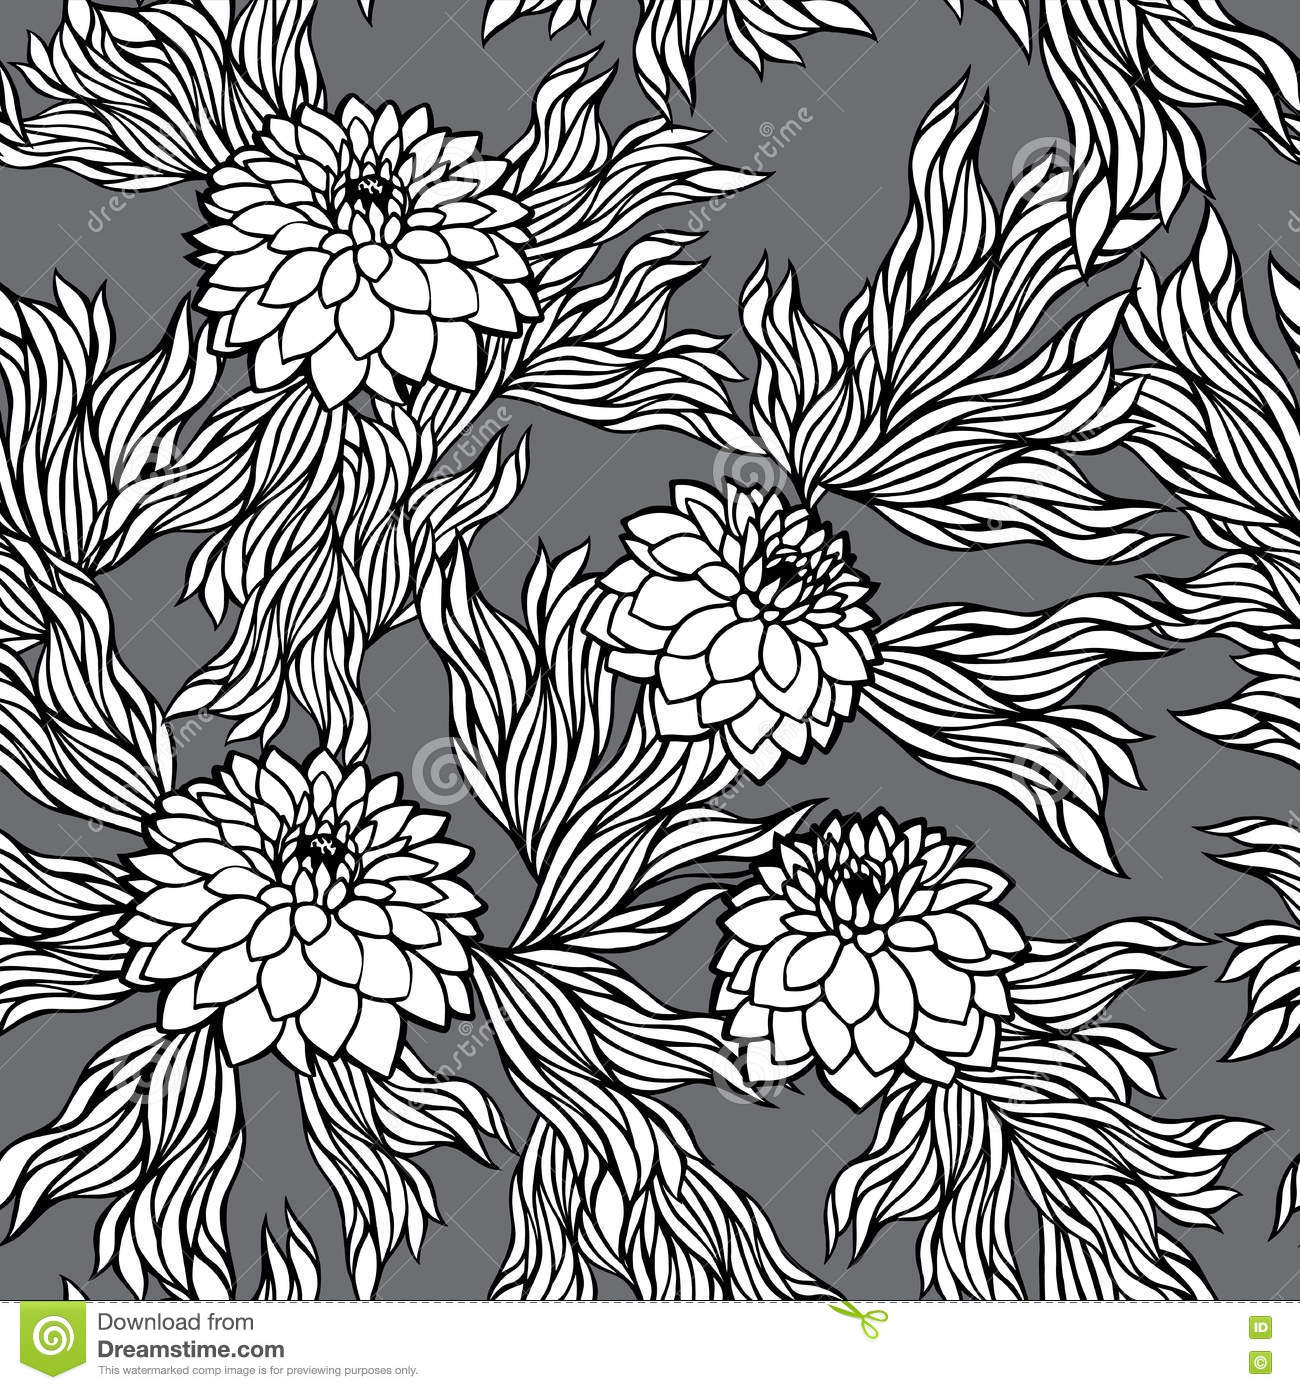 Vector Seamless Floral Pattern Black And White Monochrome In Retro Vintage Style Aster Peony Chrysanthemum Dahlia For Wallpaper Postcard Print